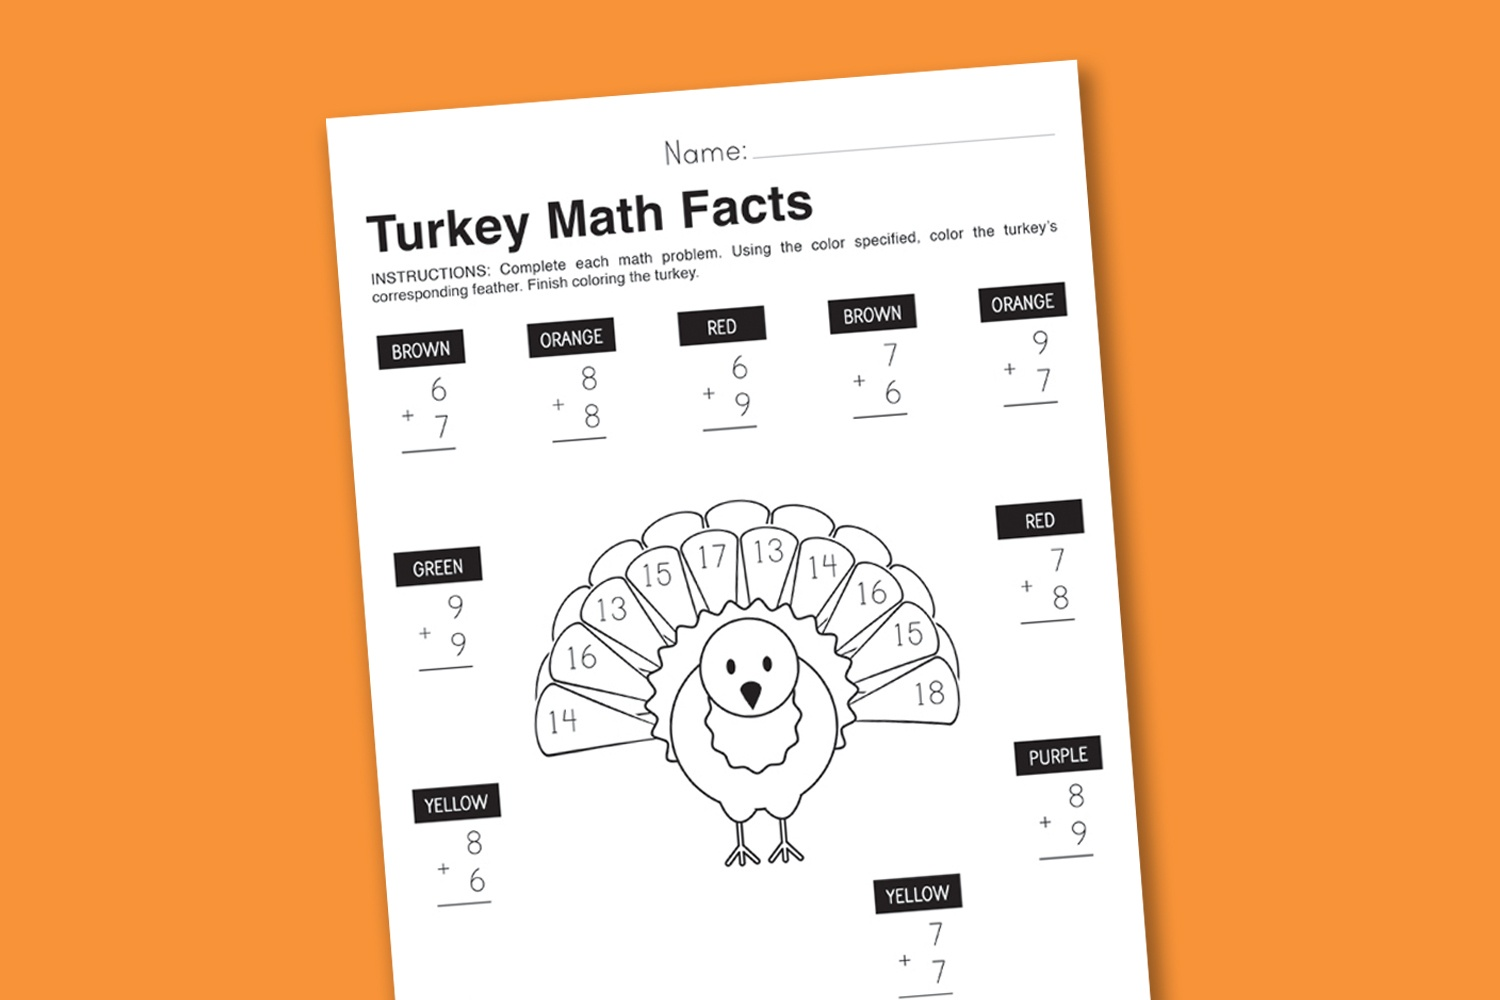 Worksheet Wednesday: Turkey Math Facts - Paging Supermom - Math Worksheets Thanksgiving Free Printable